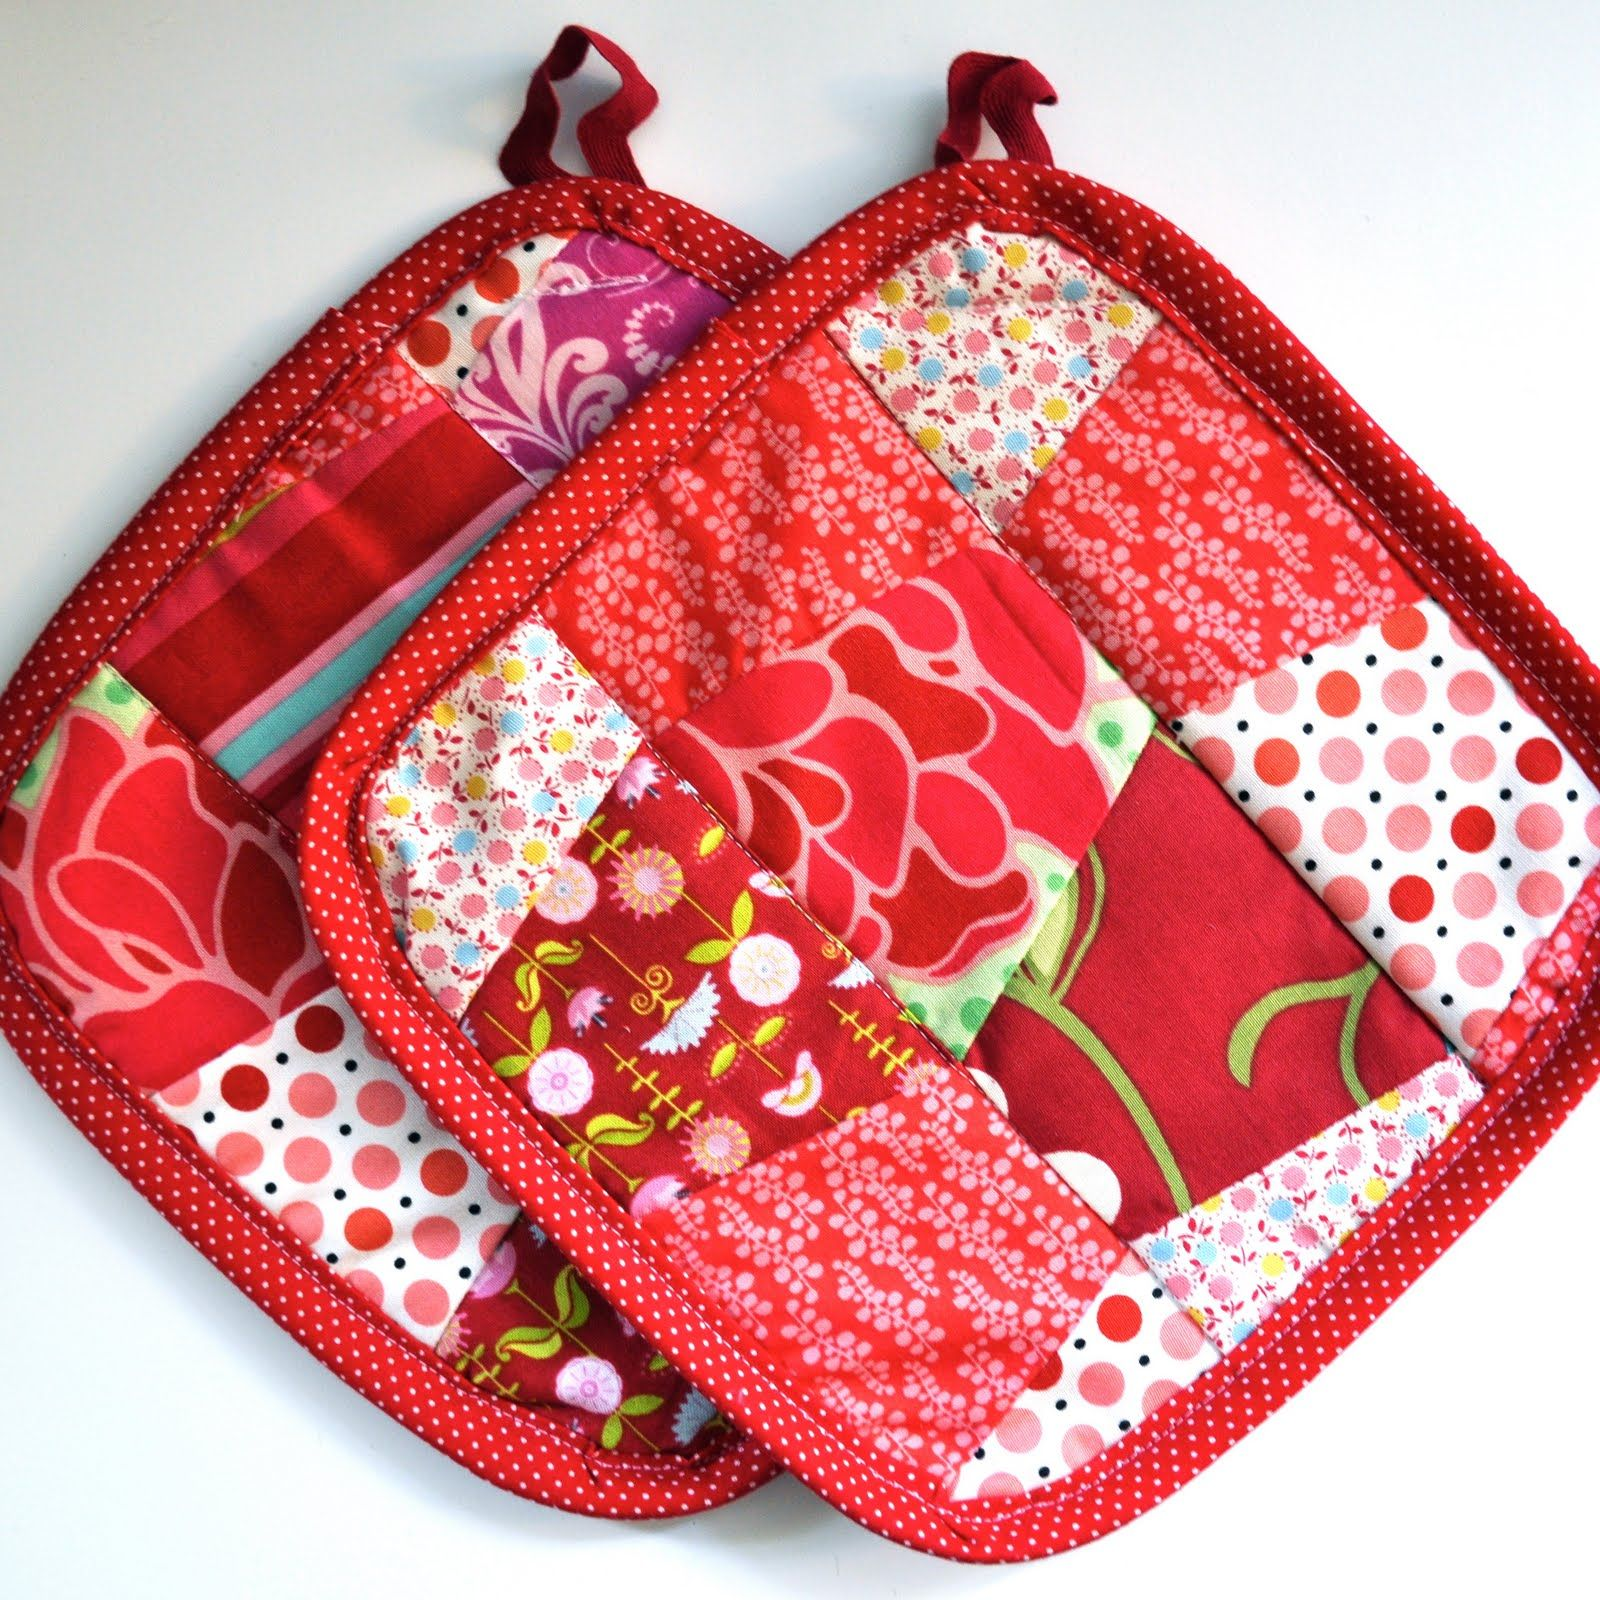 DIY Pot Holders | Me and My Singer | Pinterest | Sewing ...